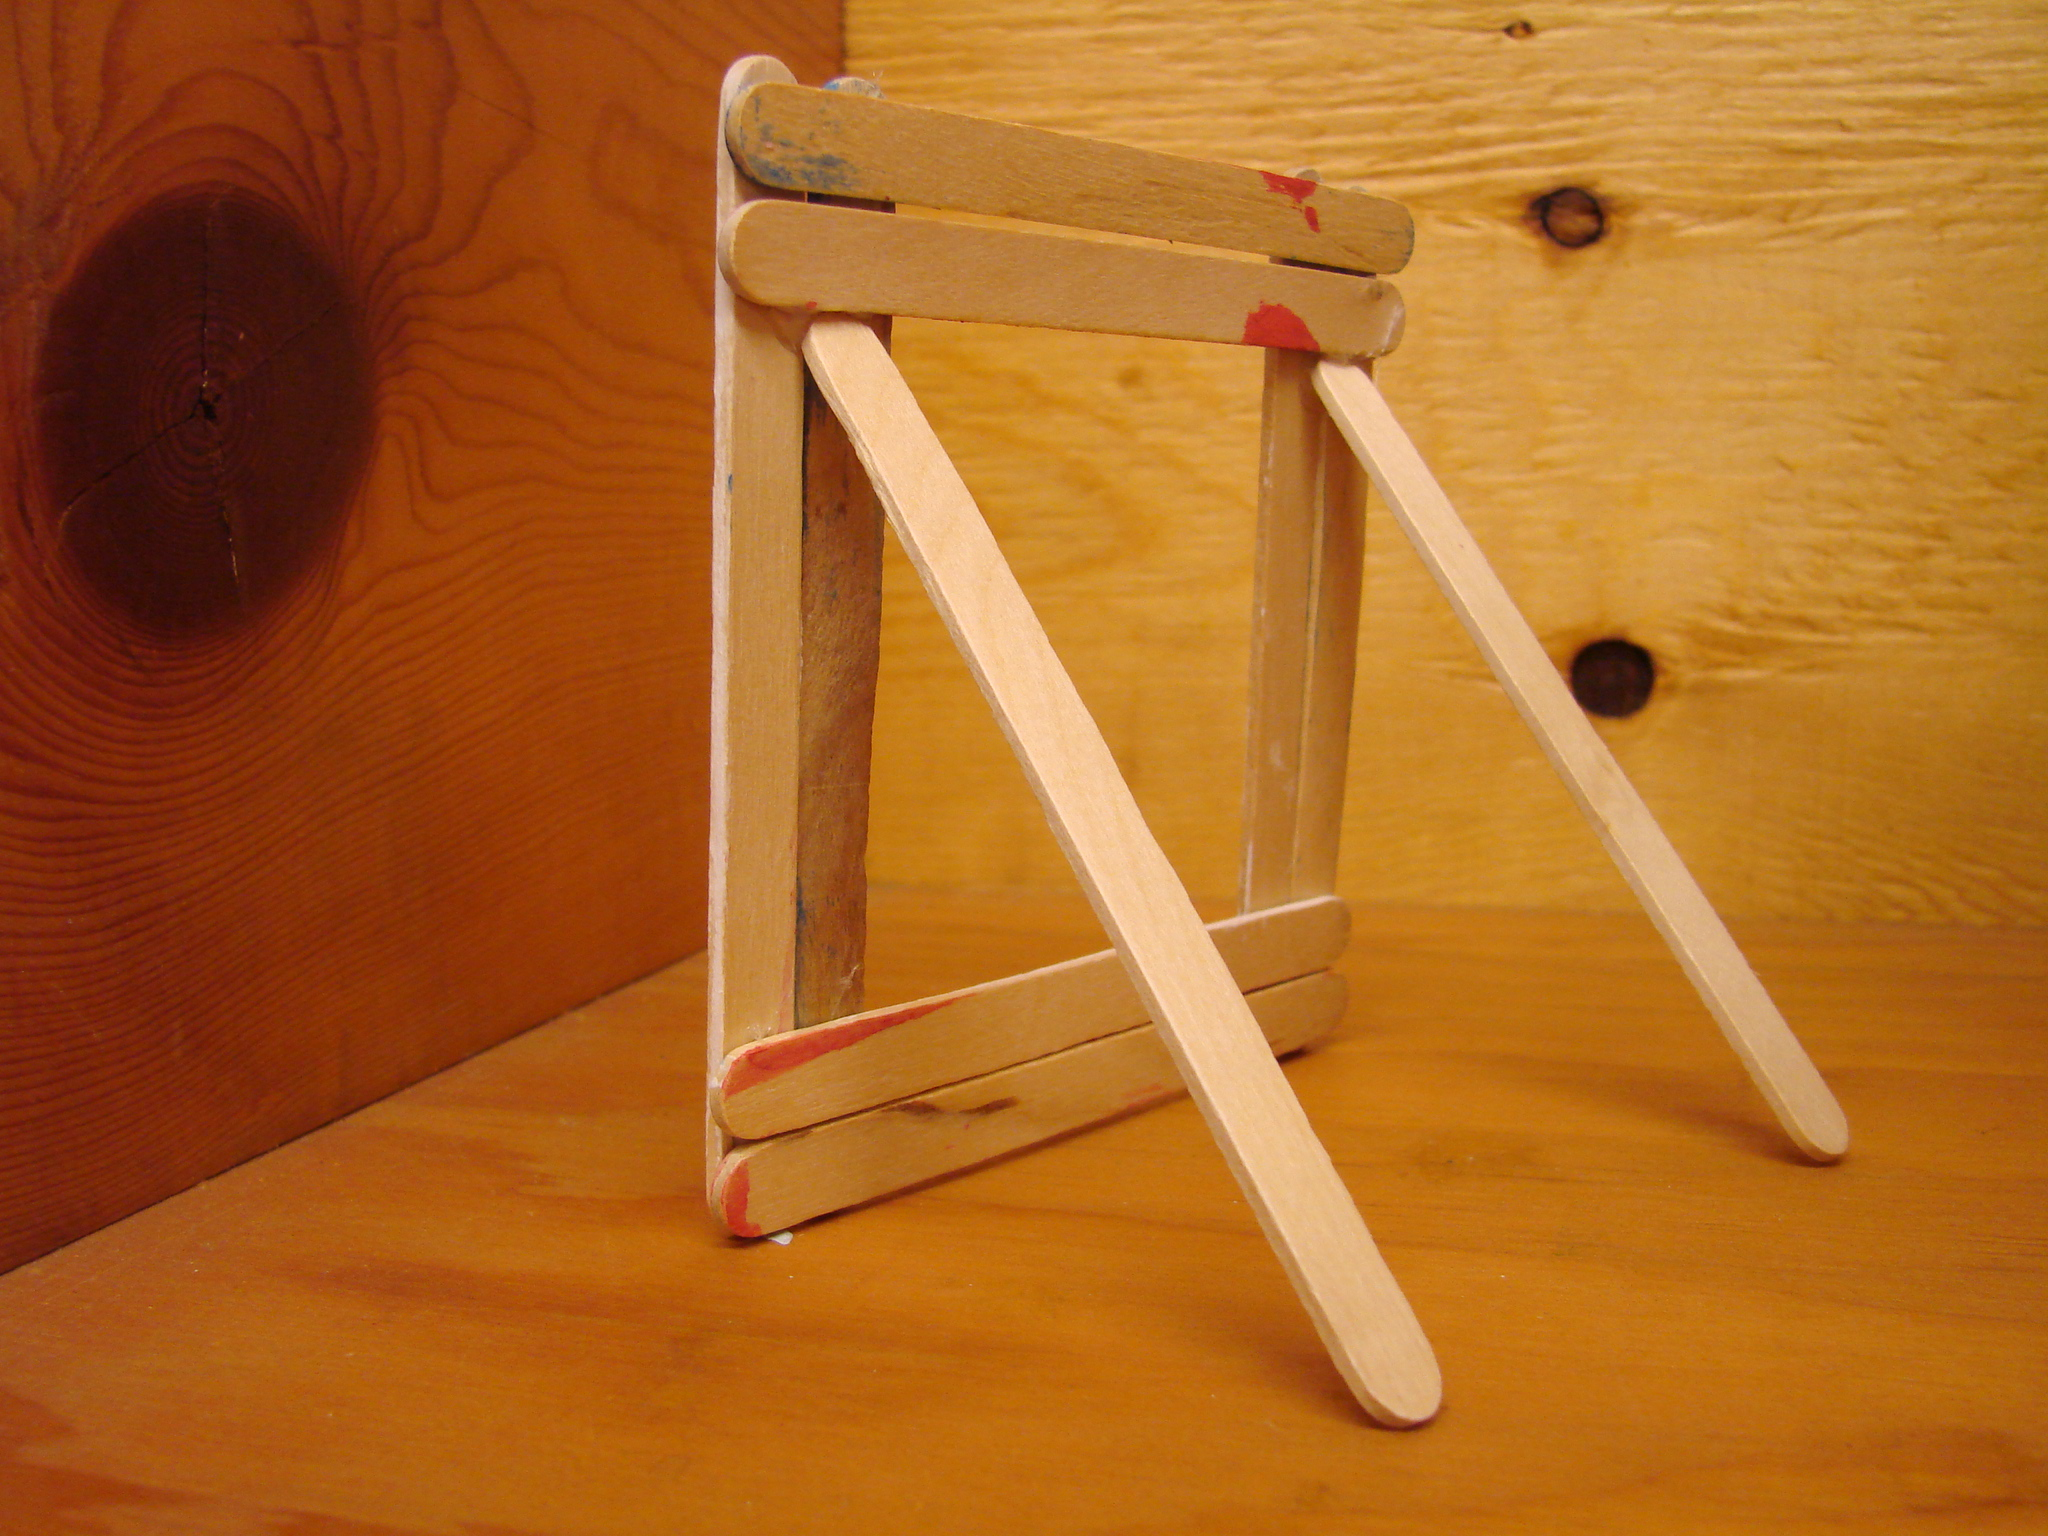 Fun kids craft ideas the resort guide rear view of popsicle stick picture frame jeuxipadfo Gallery